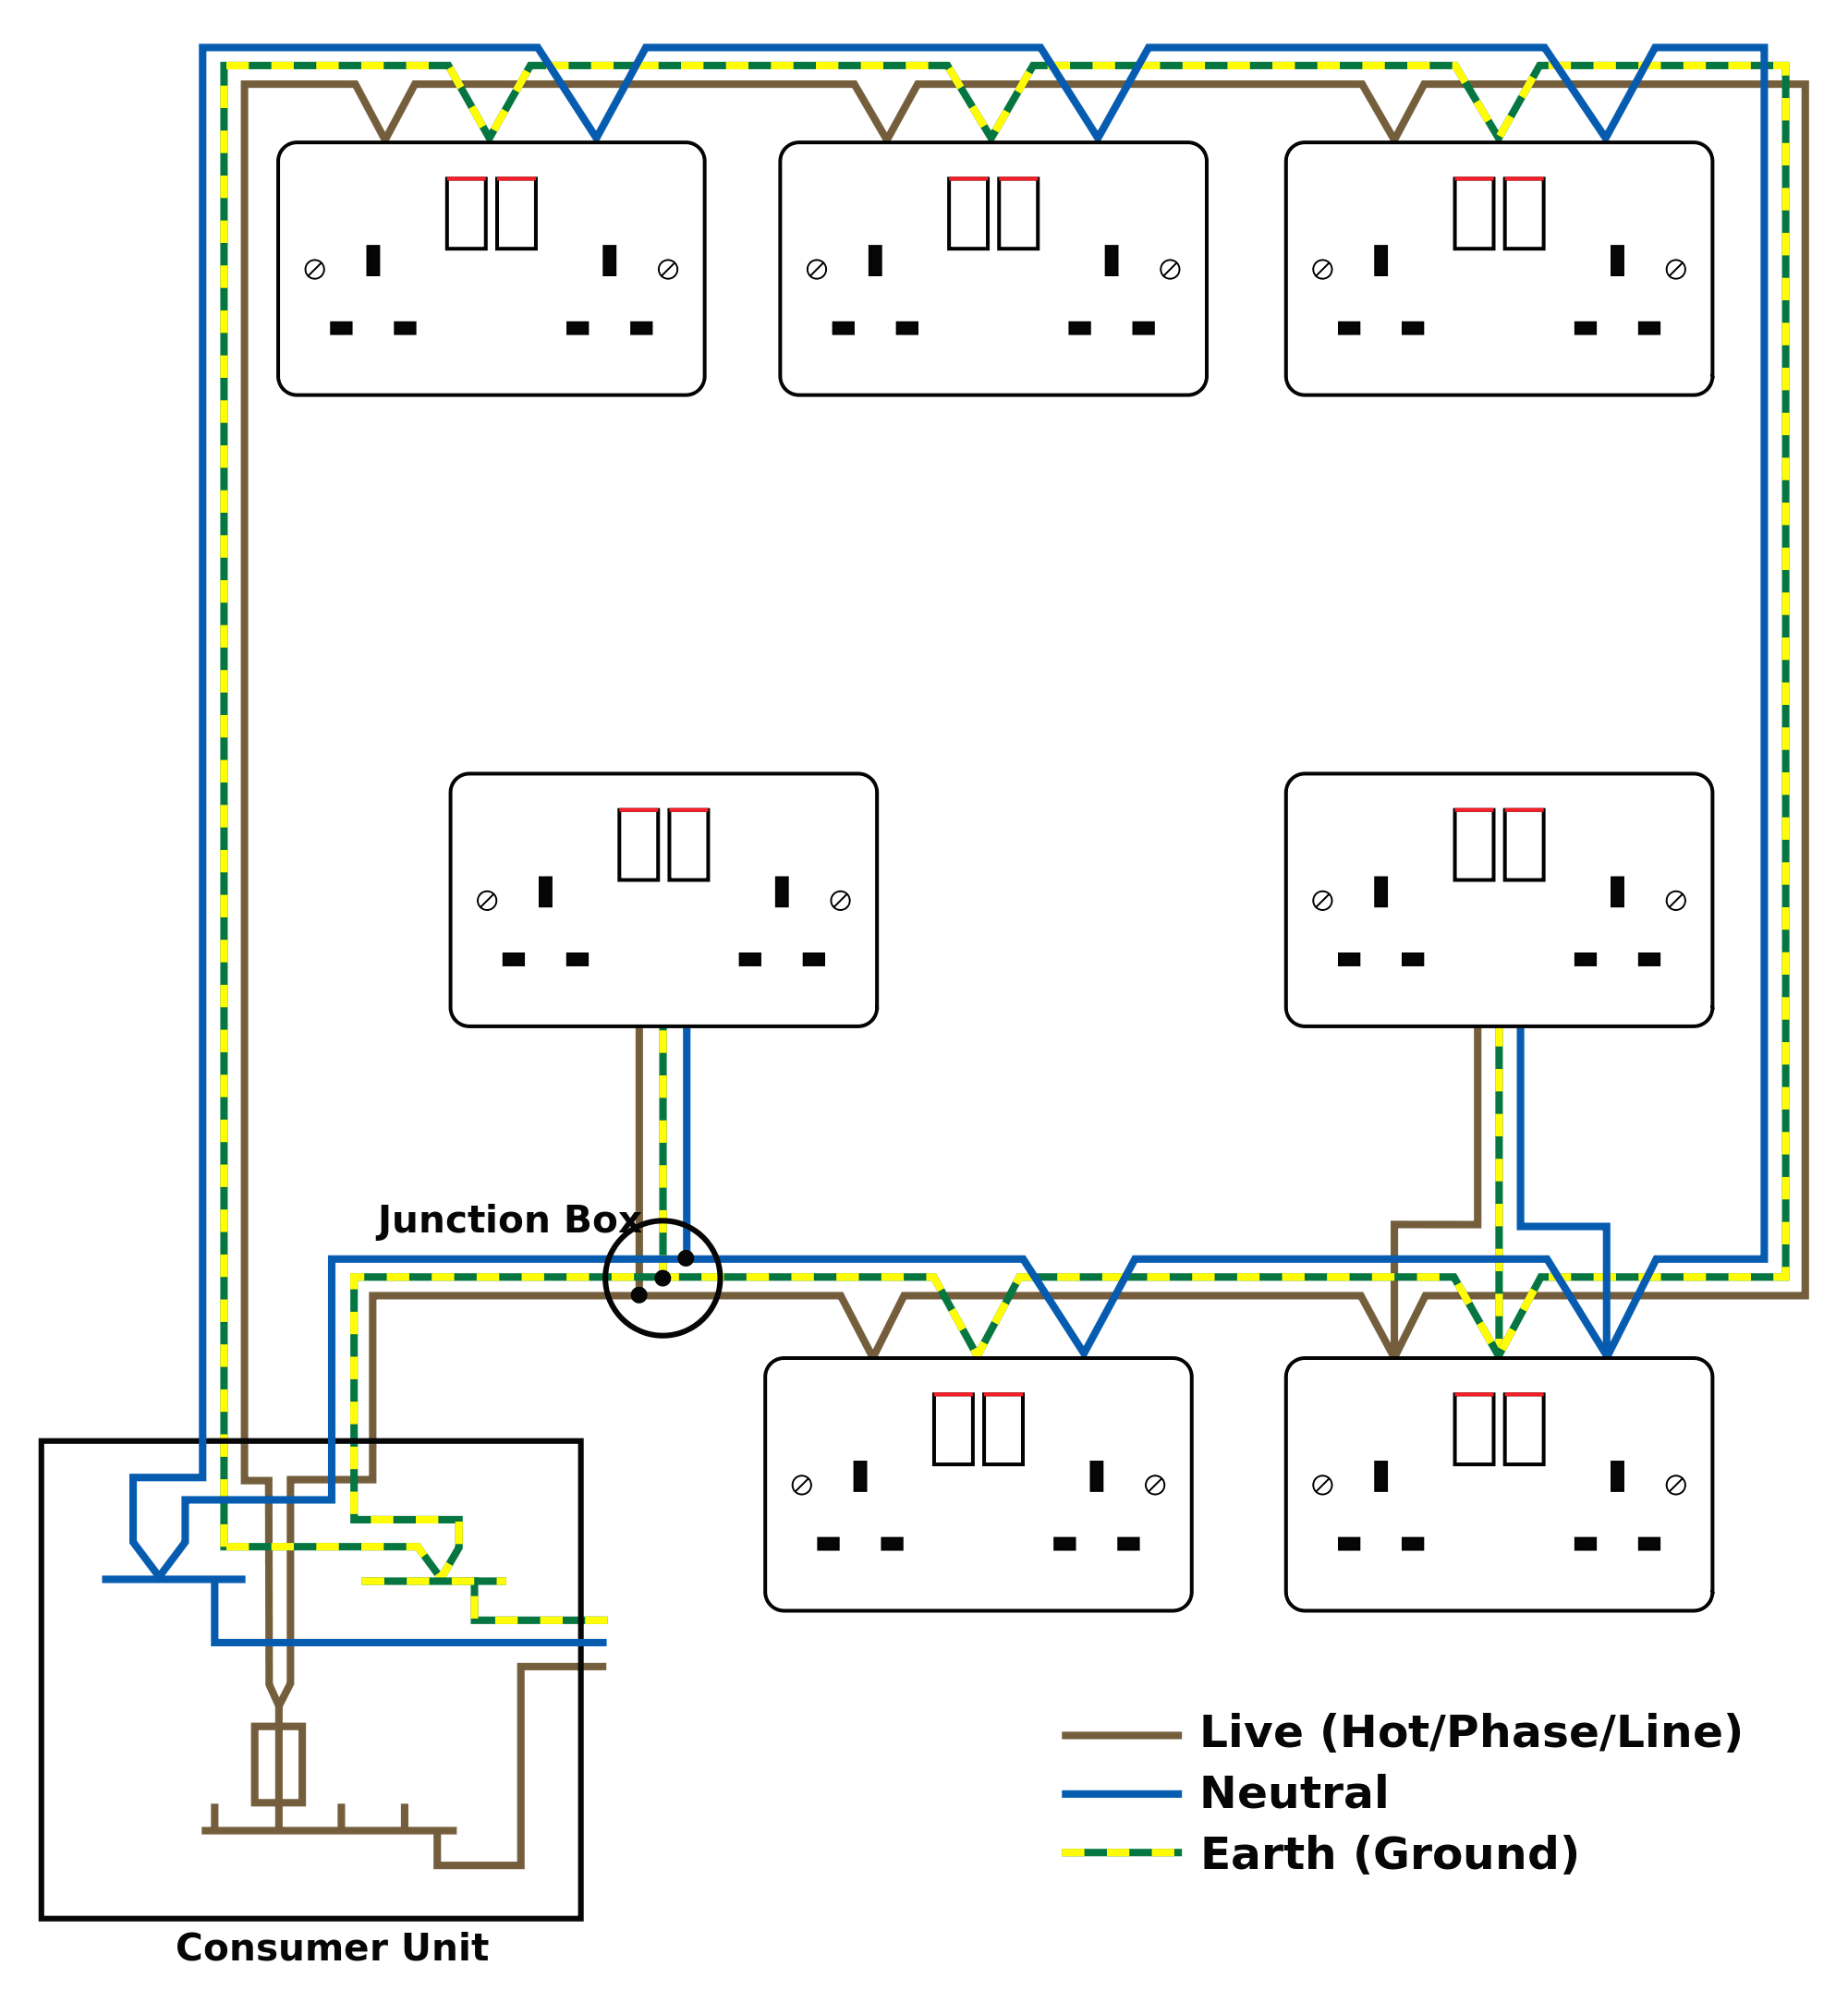 New Wiring Diagram For House Lighting Circuit Pdf Diagram Diagramsample Diagramtemplate Check More At Home Electrical Wiring House Wiring Electrical Wiring